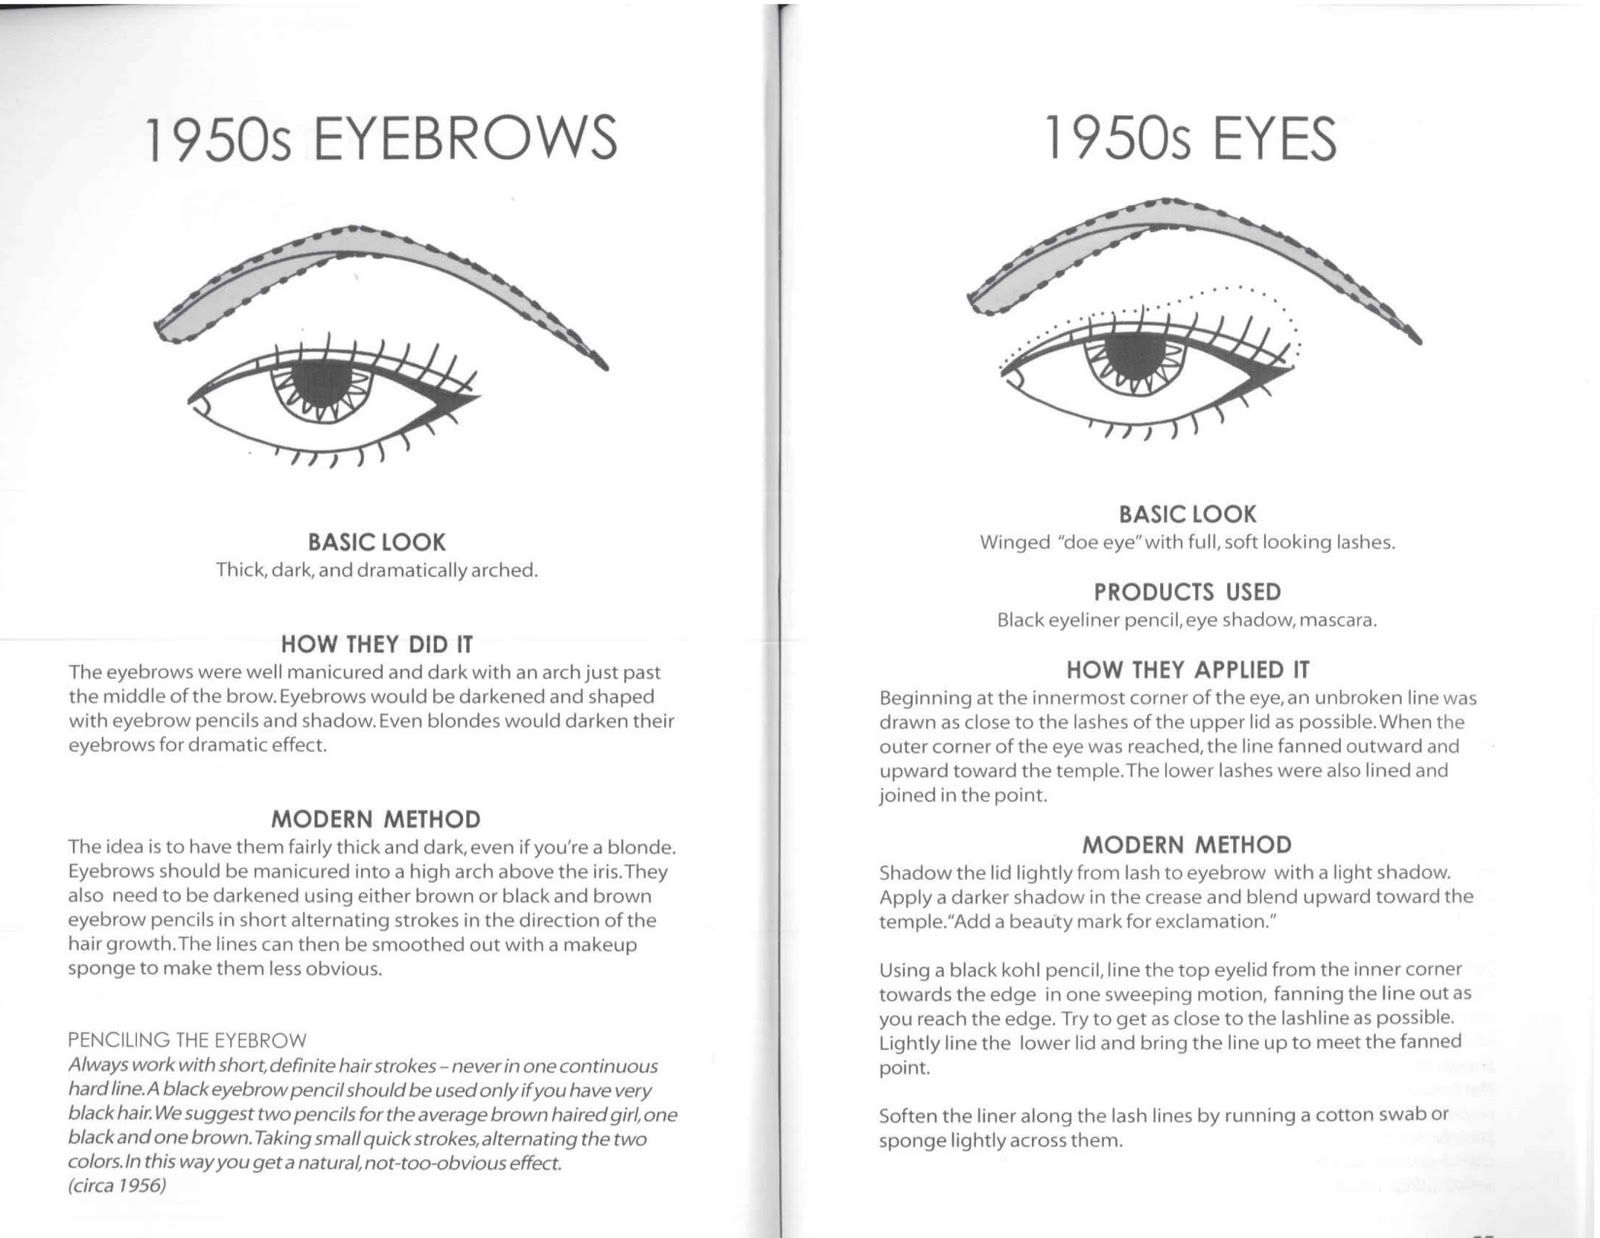 How To Create The 1950s Arched Eyebrow + Eye Makeup For The Ultimate